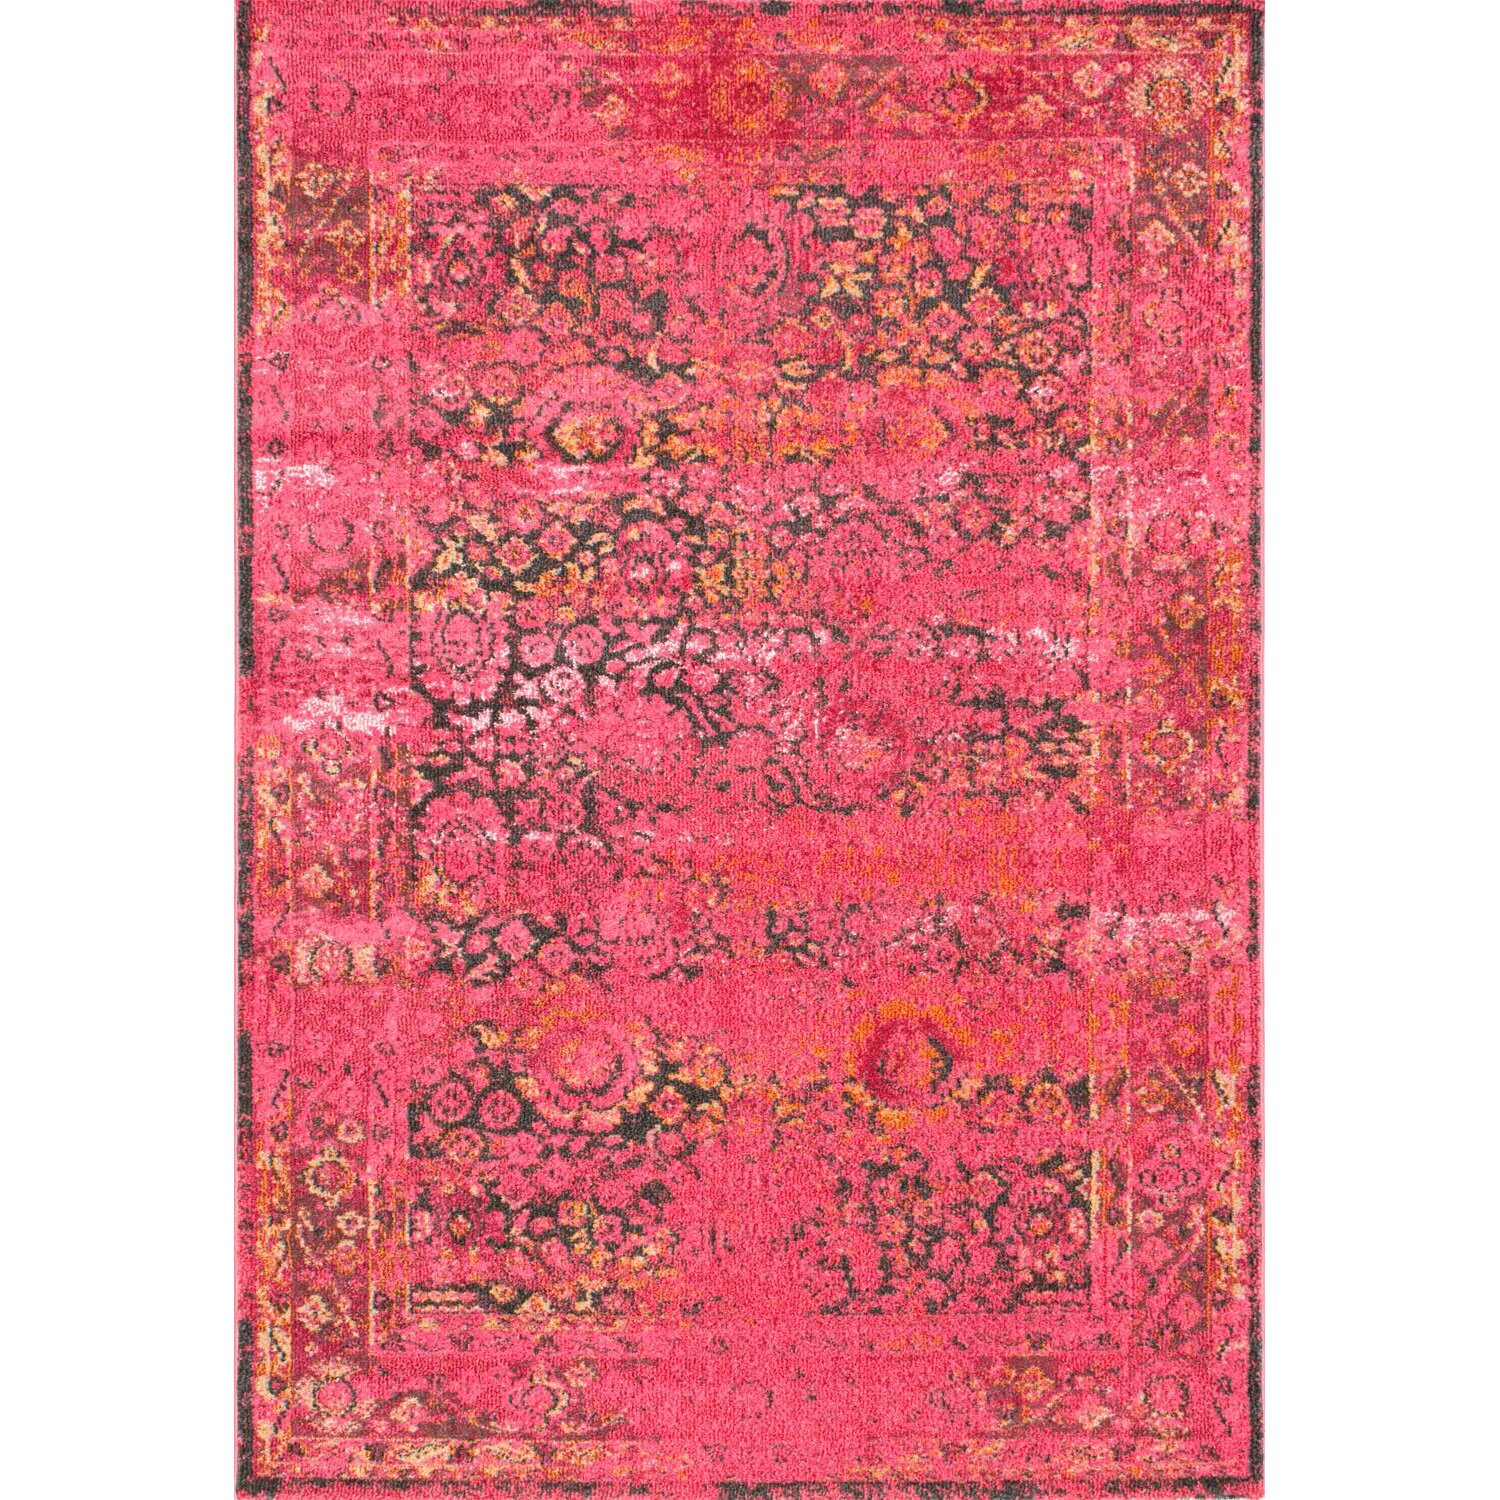 Nuloom Chroma Shuler Cherry Pink Area Rug Reviews Wayfair